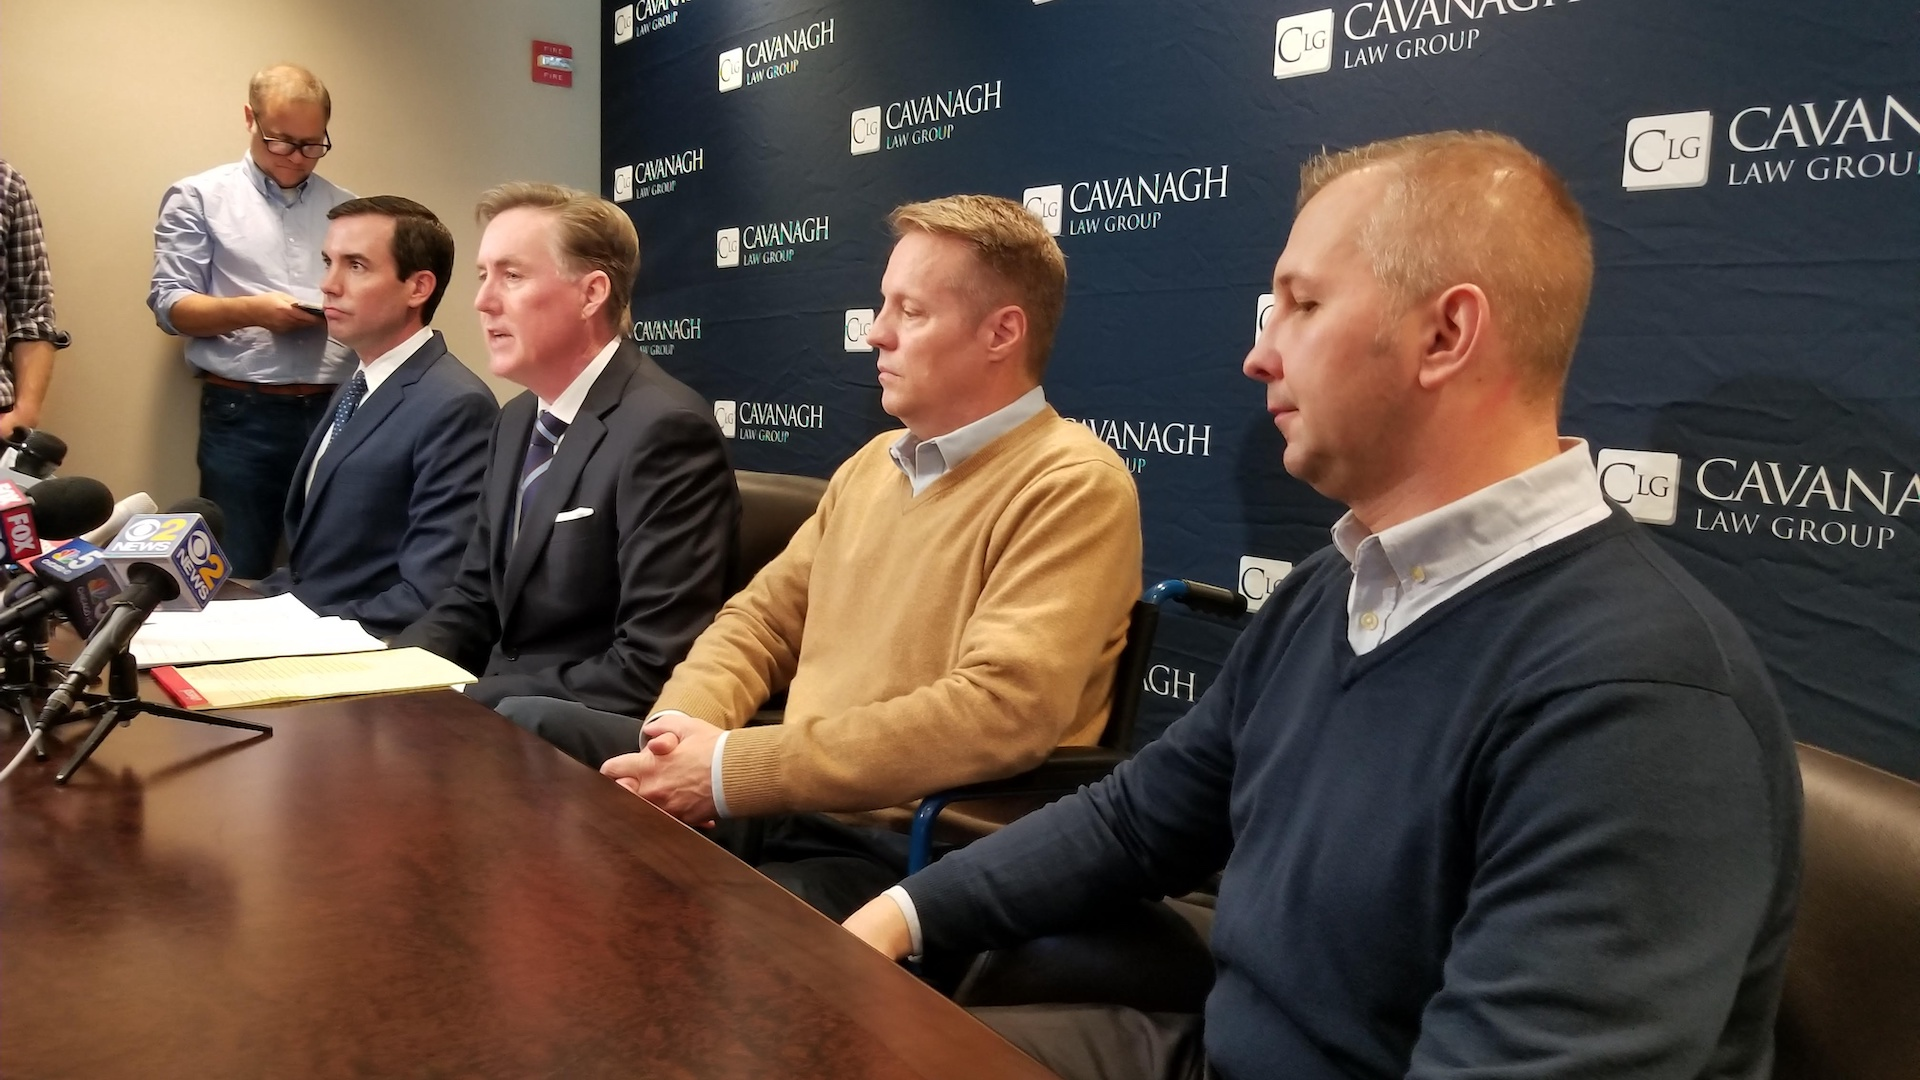 From right: Tomasz Stacha, John Sherwood and attorney Tim Cavanagh discuss their lawsuit. (Matt Masterson / Chicago Tonight)